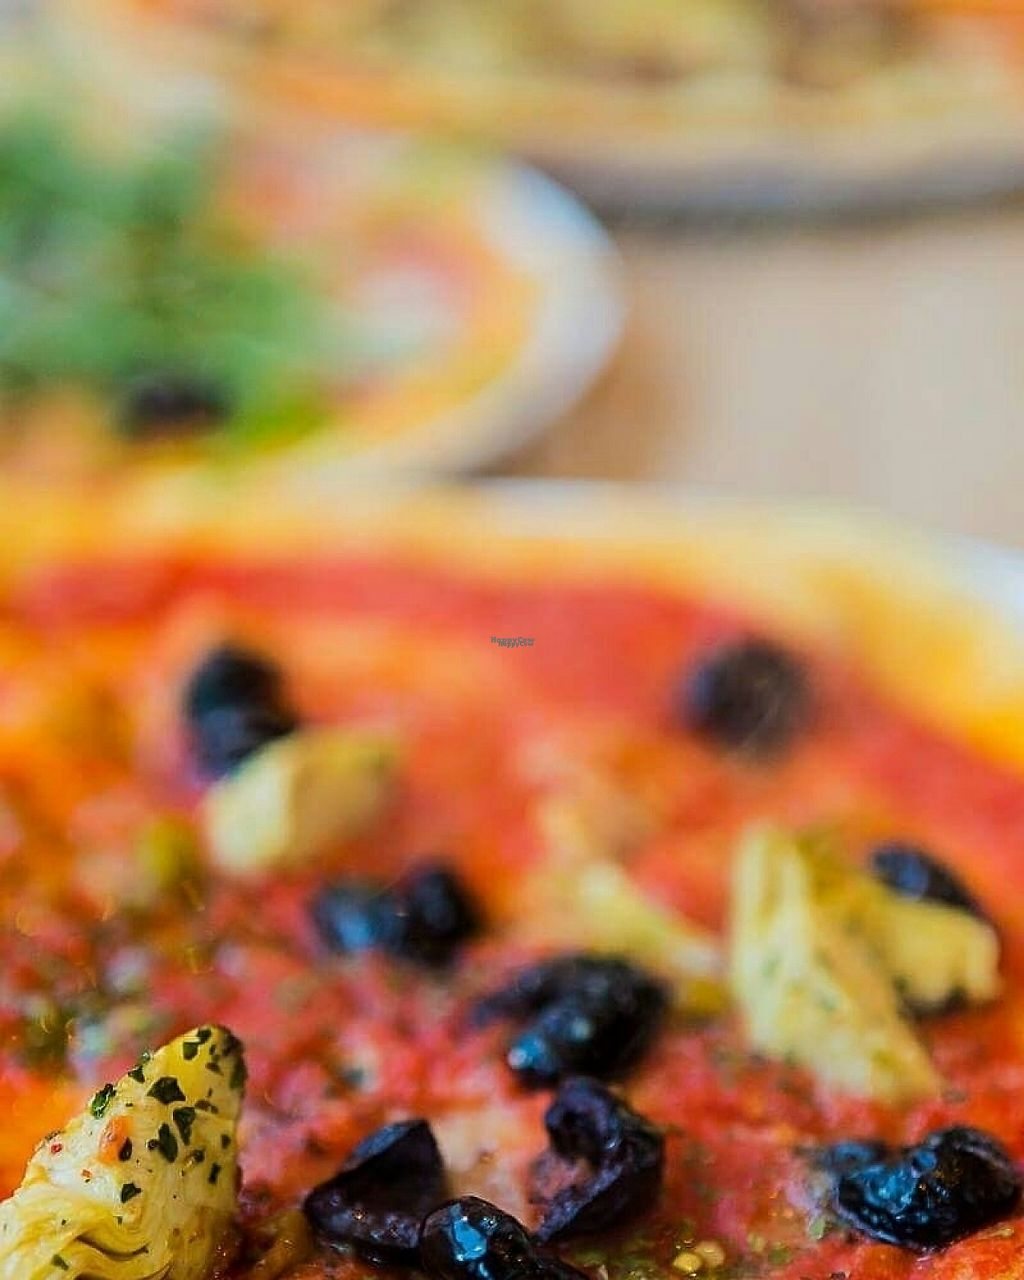 """Photo of Pizzeria Bellini  by <a href=""""/members/profile/MarcusViechK%C3%B6sters"""">MarcusViechKösters</a> <br/>Pizza with olives and artichokes  <br/> March 7, 2017  - <a href='/contact/abuse/image/88159/233784'>Report</a>"""